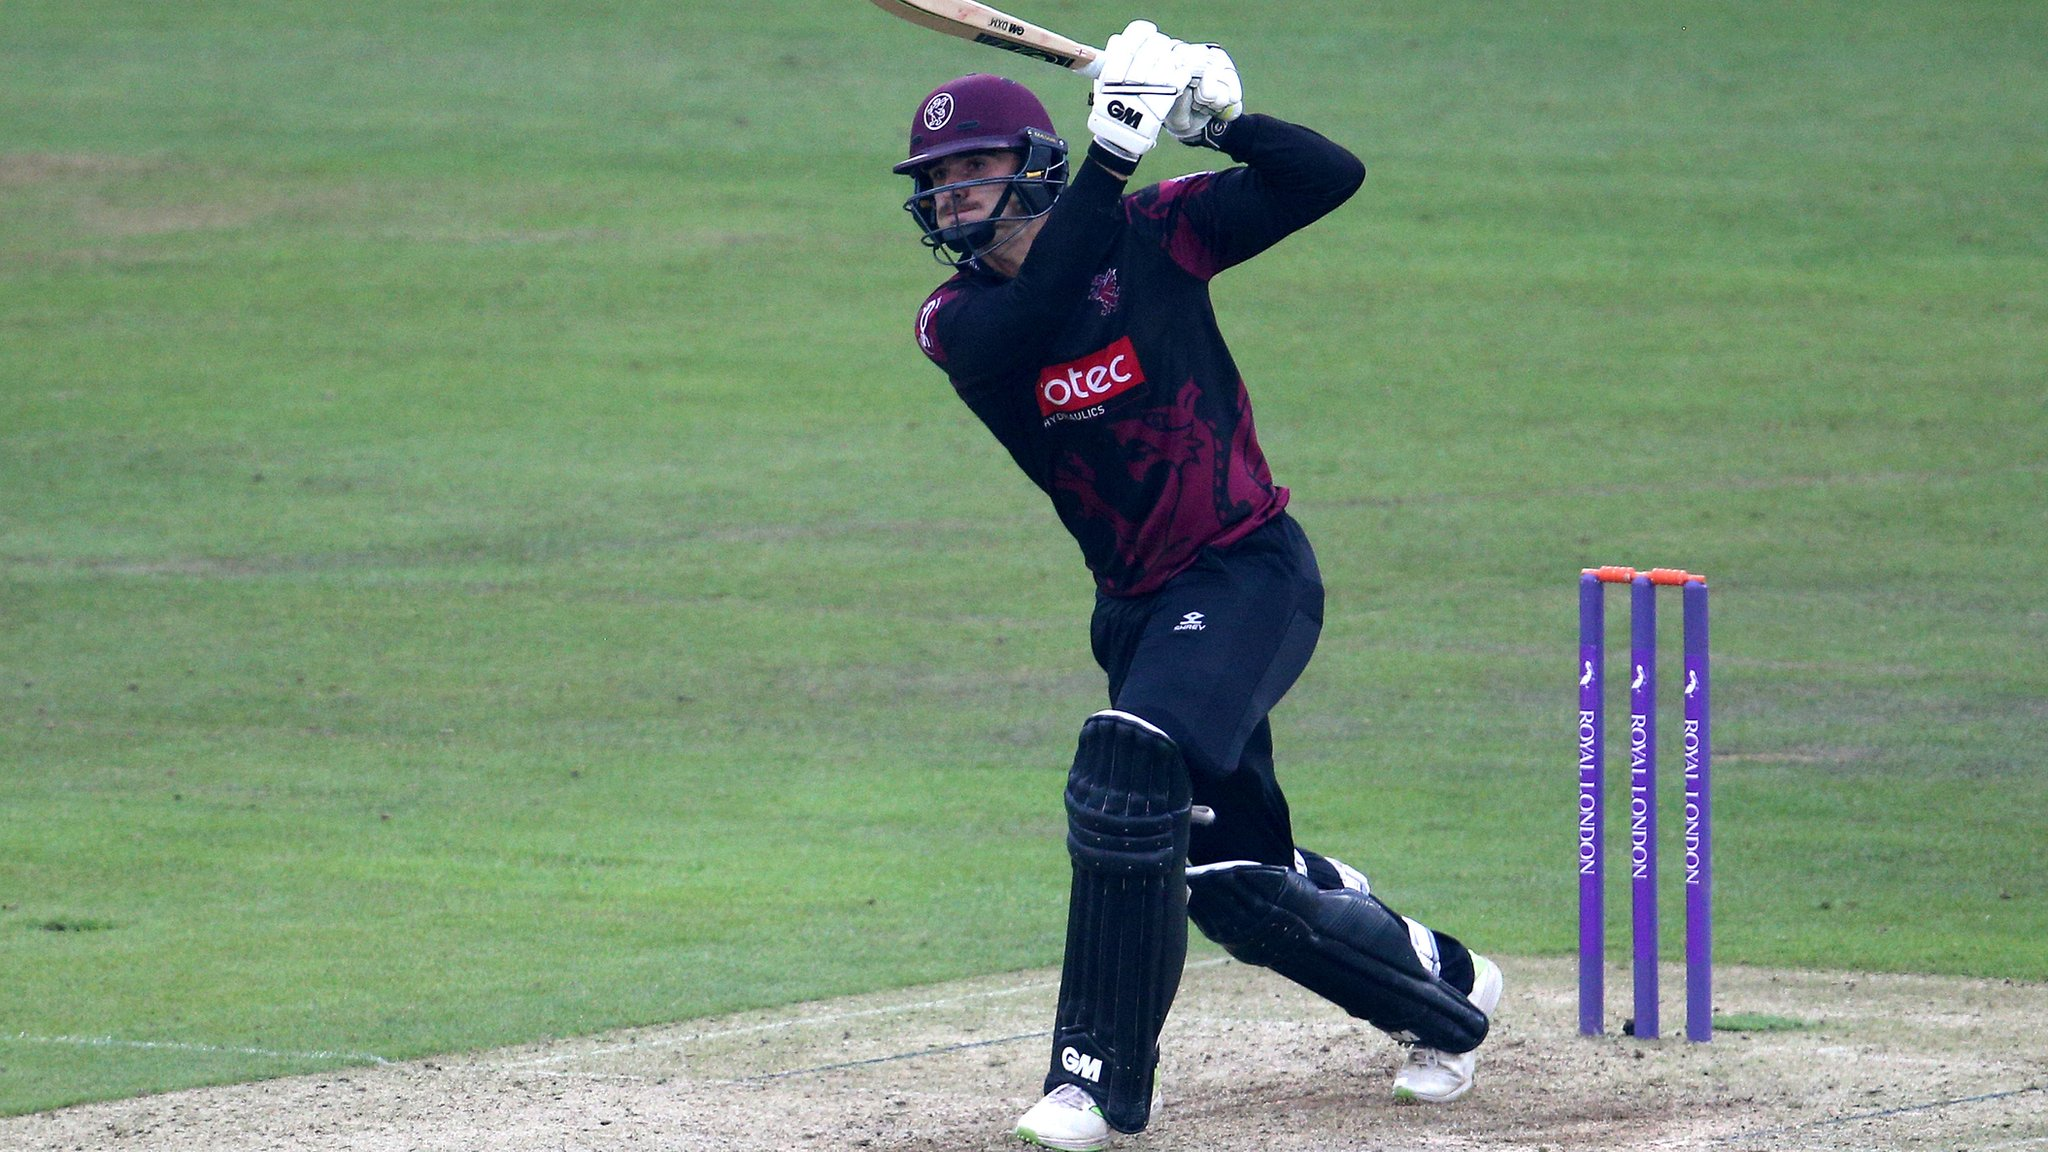 County Championship: Somerset all-rounder Ben Green signs new deal